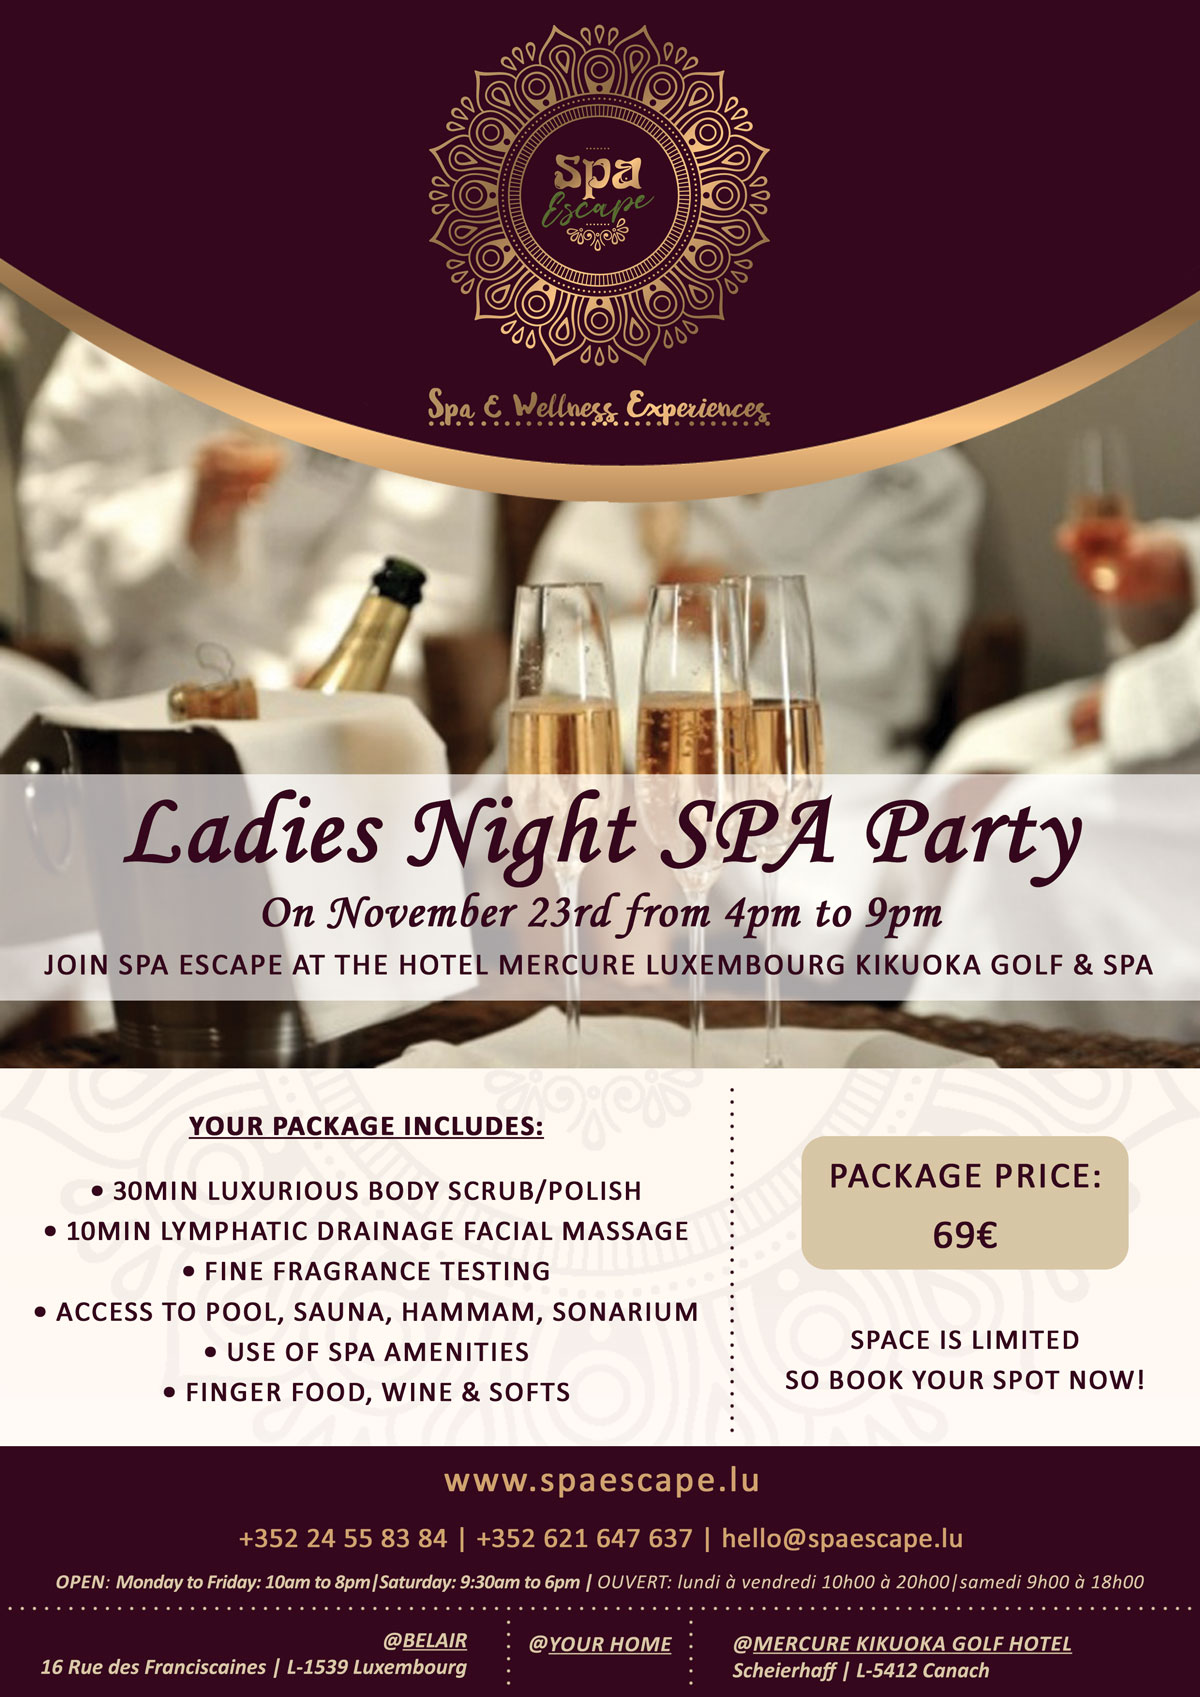 Ladies Night - Spa Party by Spa Escape in Luxembourg